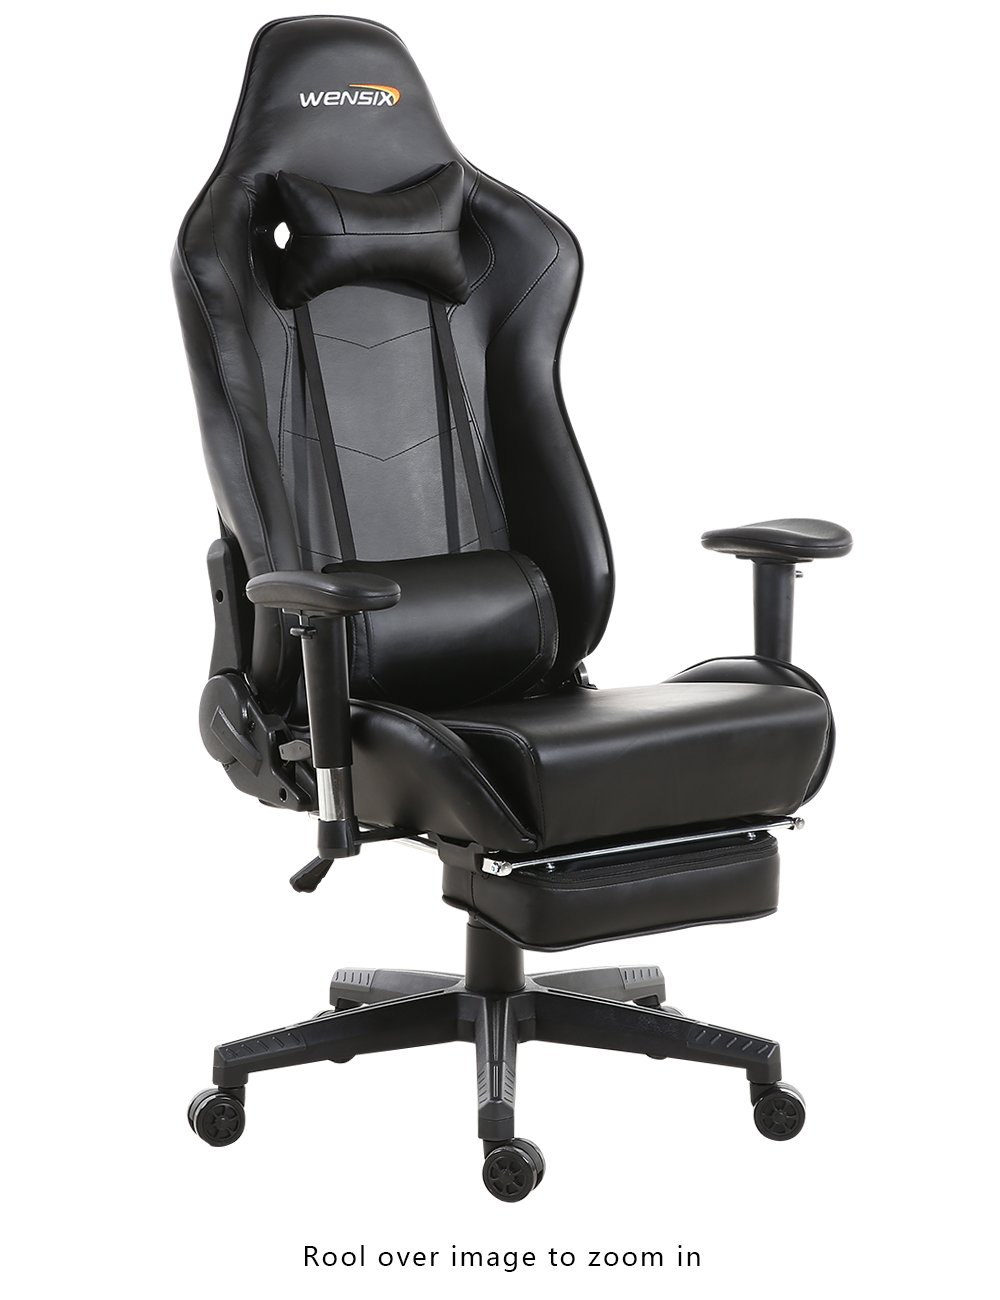 WENSIX Gaming Chair High Back Computer Chair With Adjusting Footrest, Ergonomic designs Extremely Durable PU Leather Steel Frame Racing Chair (Black) by WENSIX